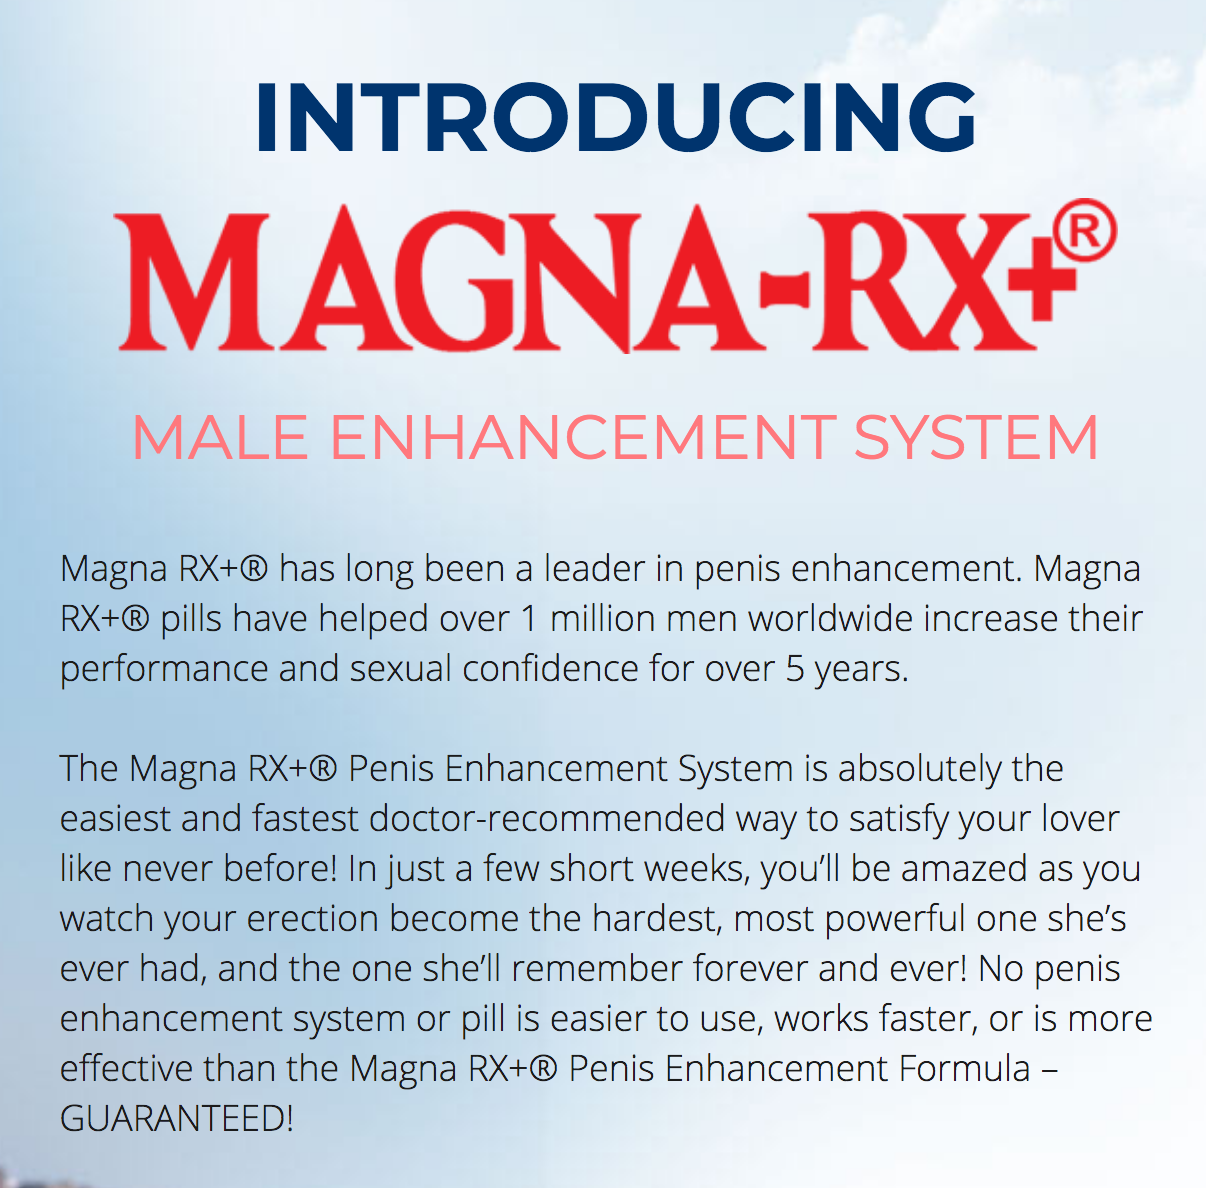 How To Enter Magna RX Coupon Code